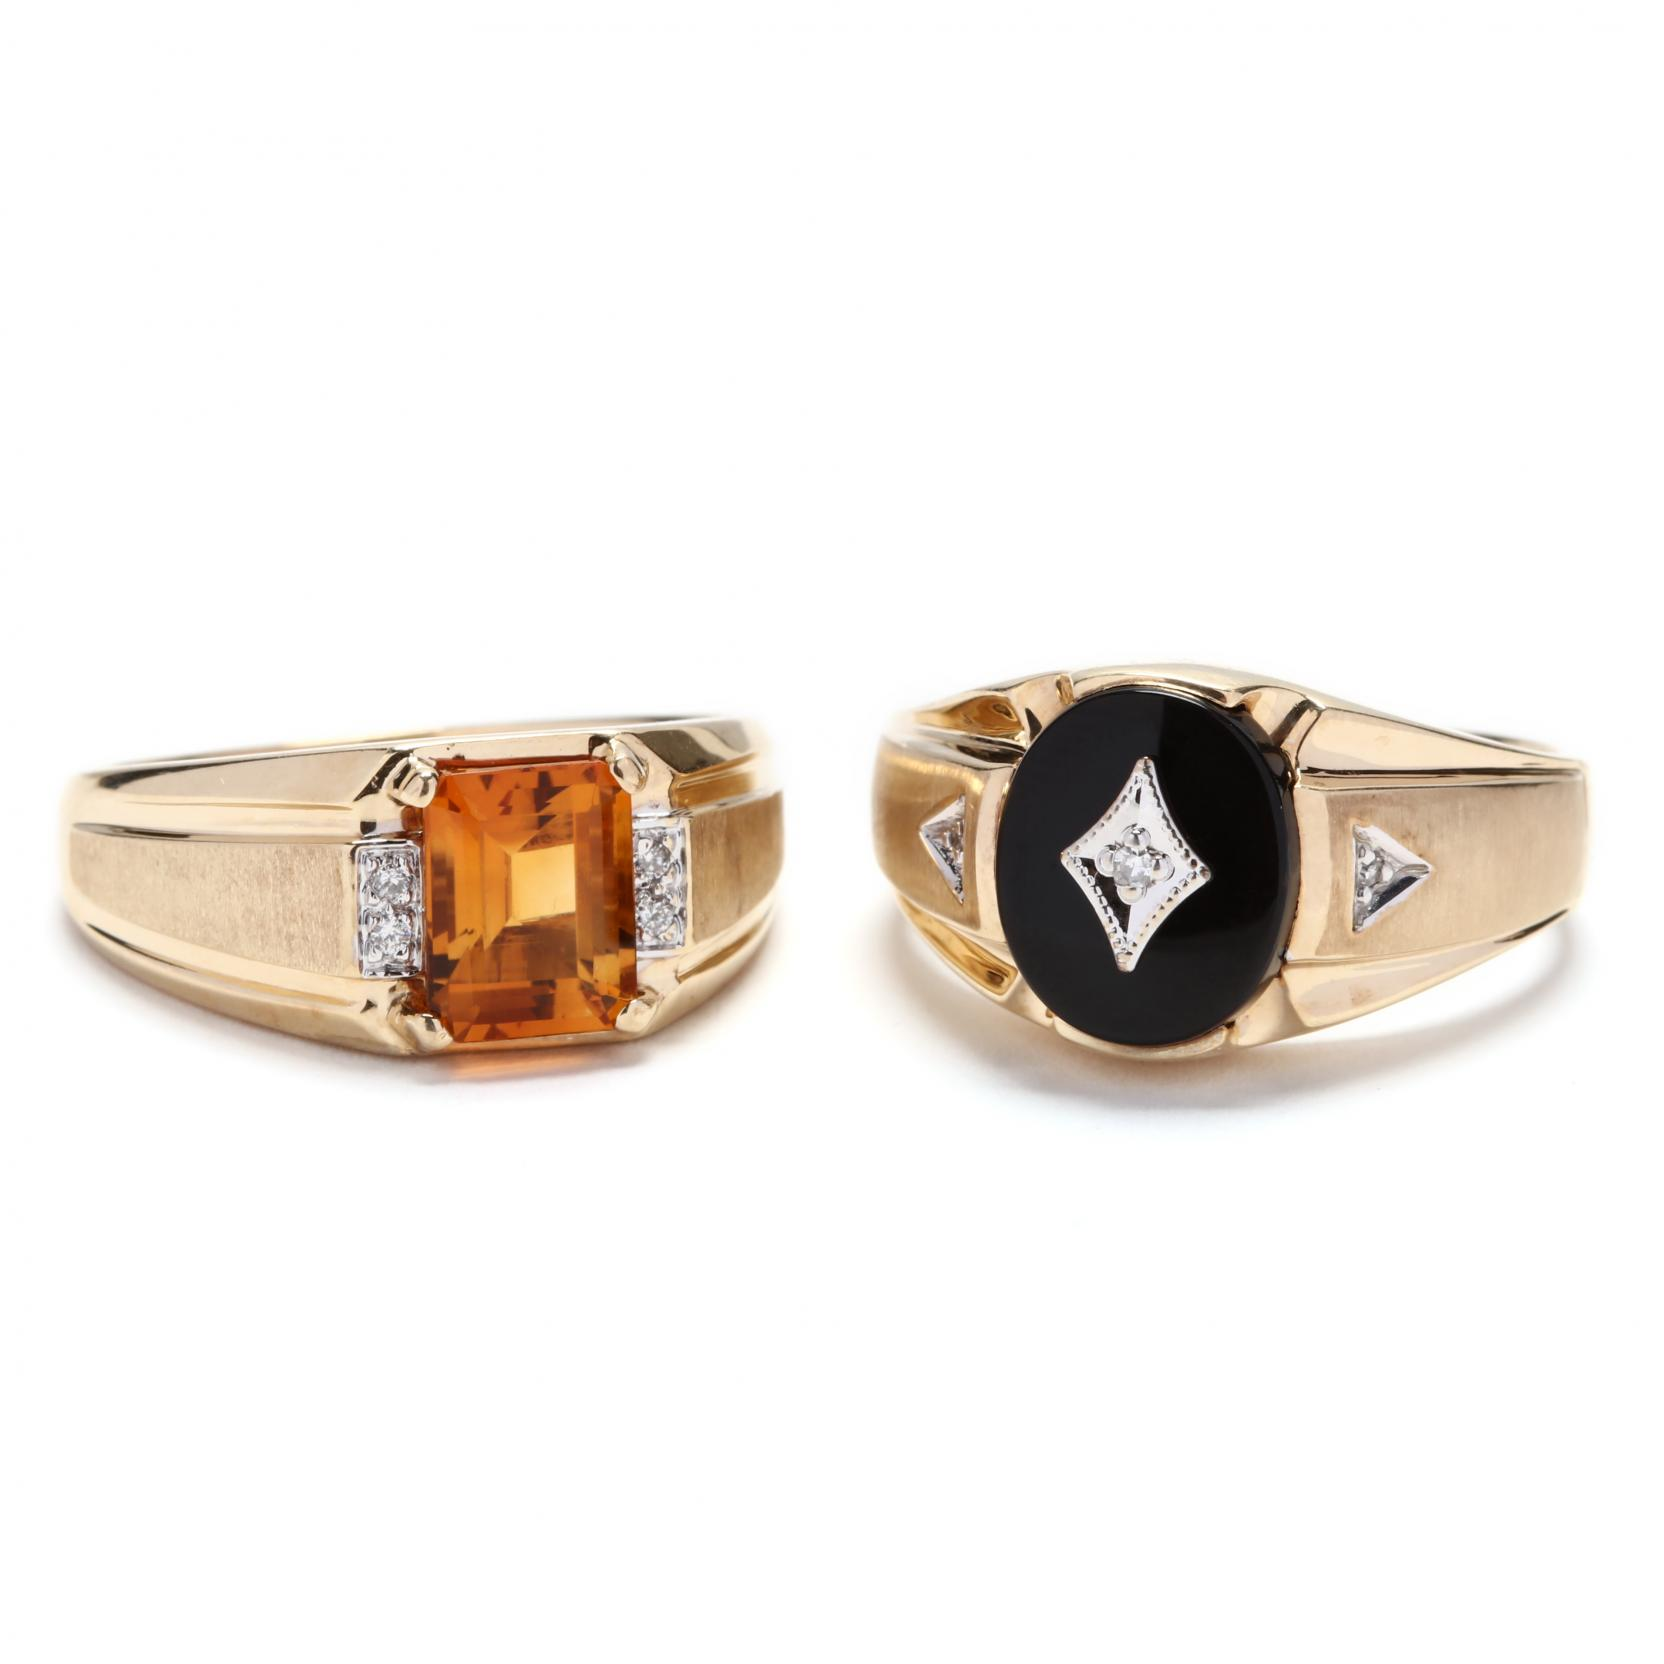 two-gent-s-10kt-gold-and-gemstone-rings